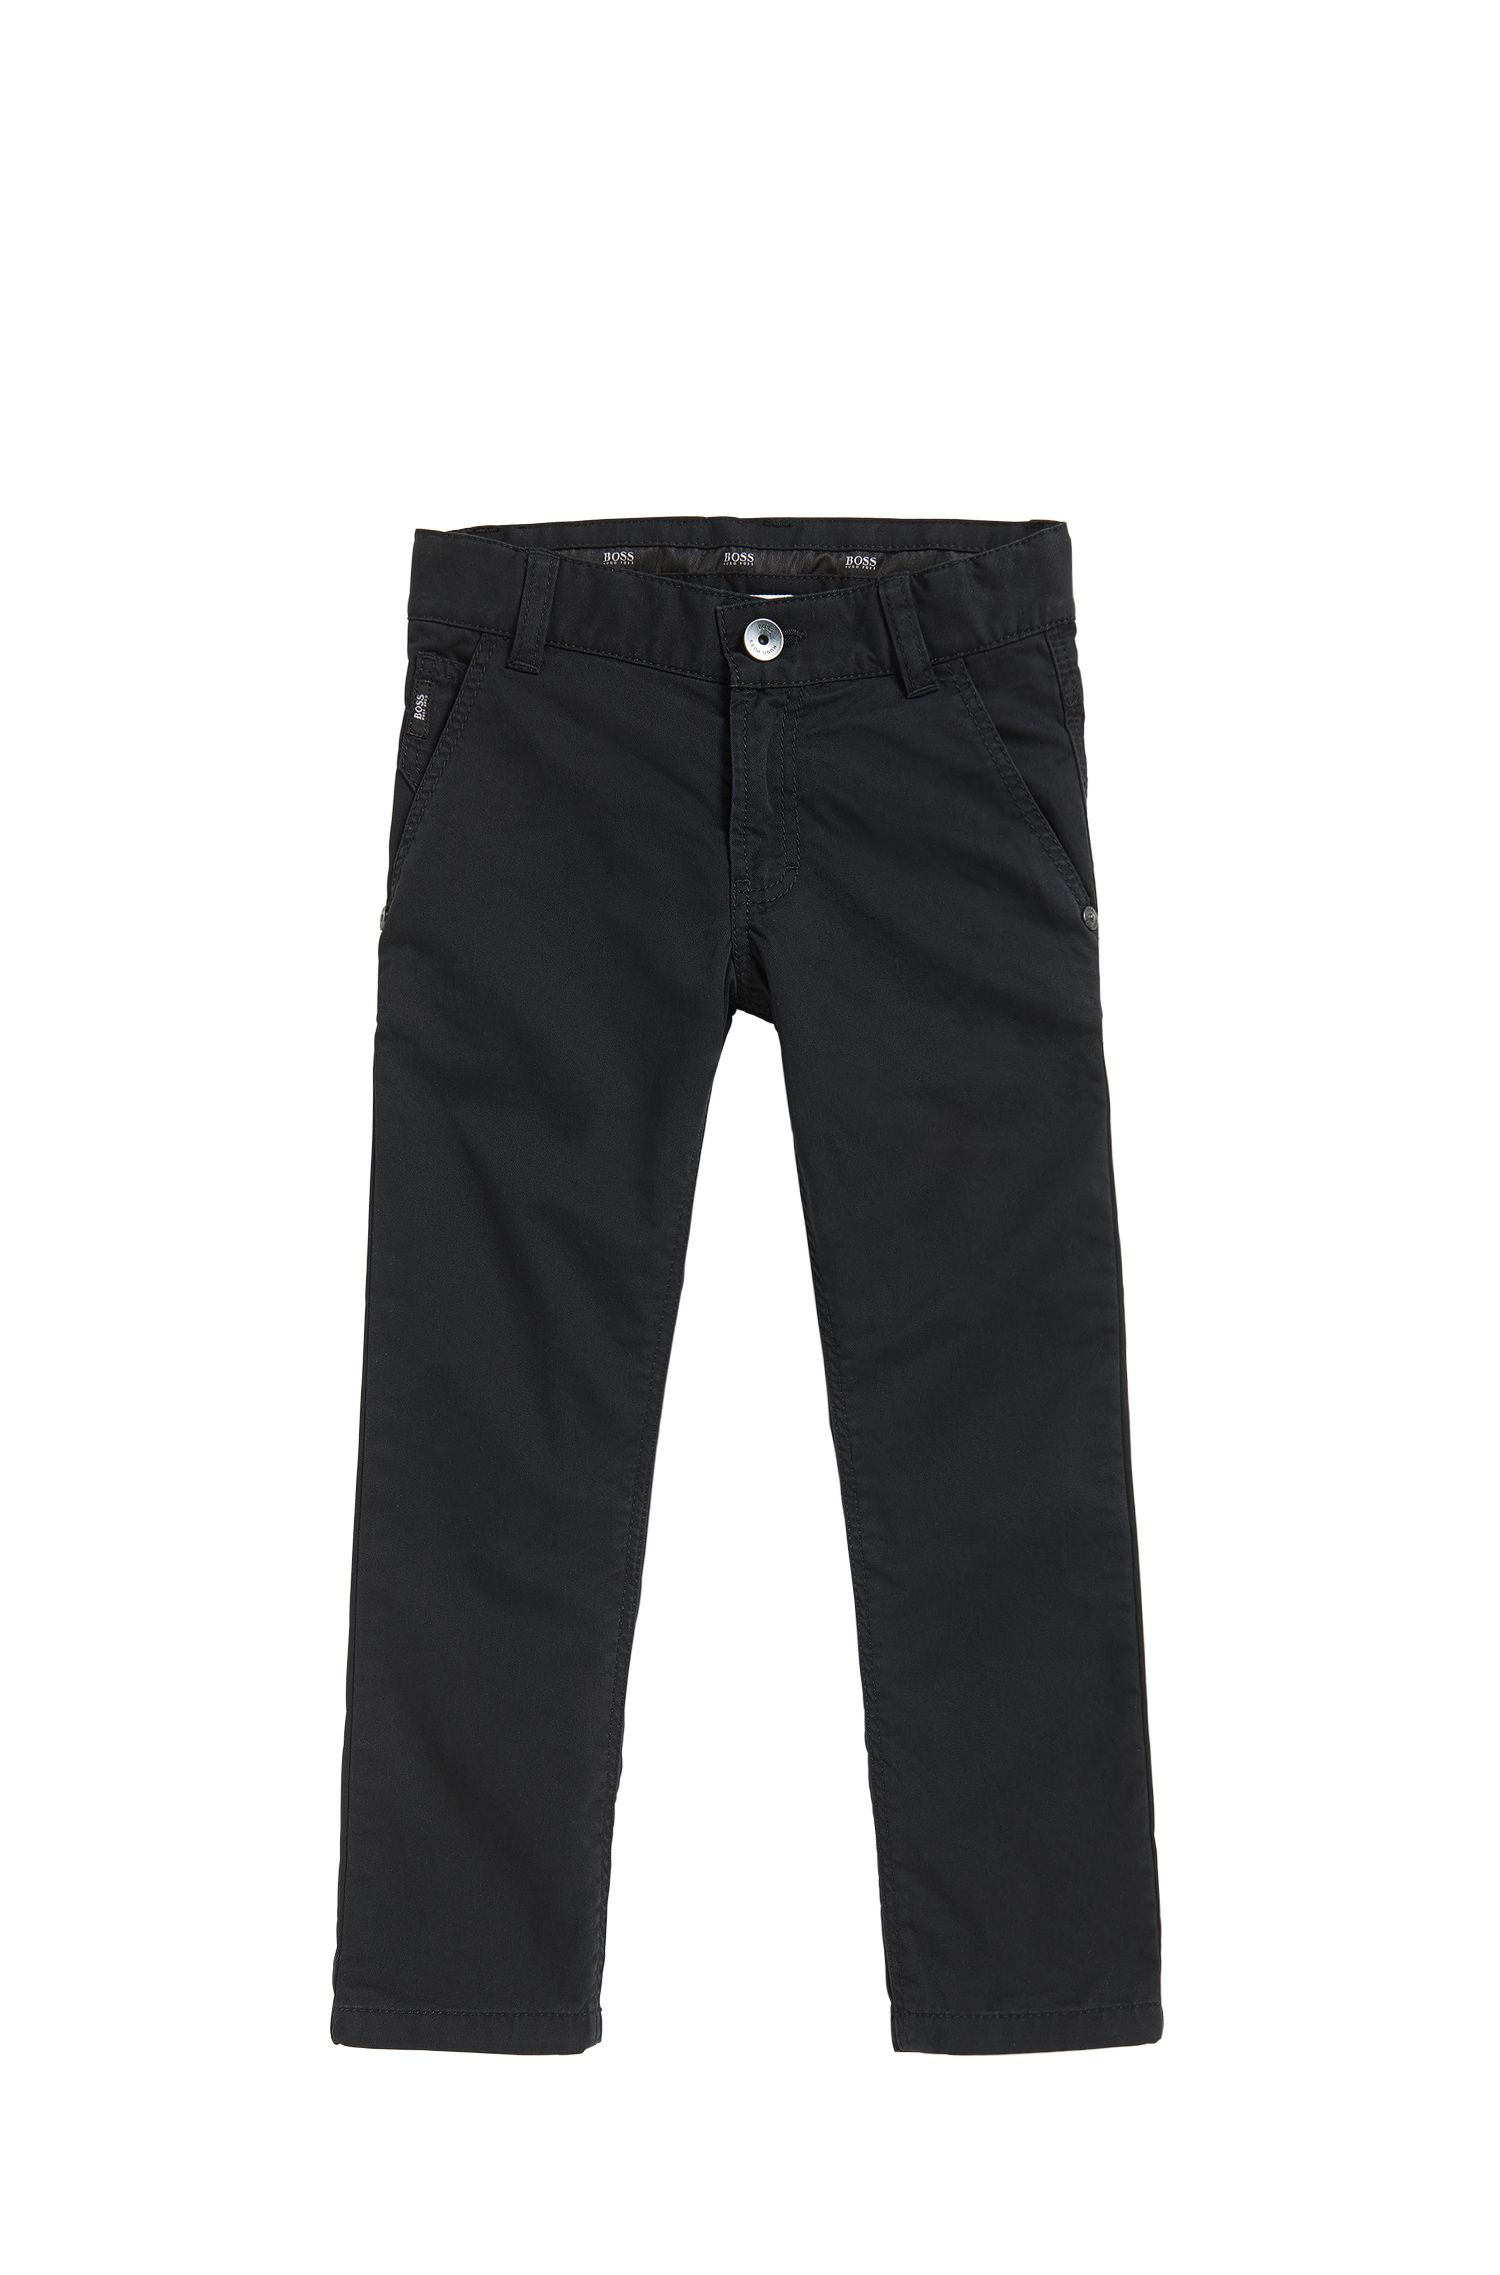 Kids' slim-fit trousers in cotton twill